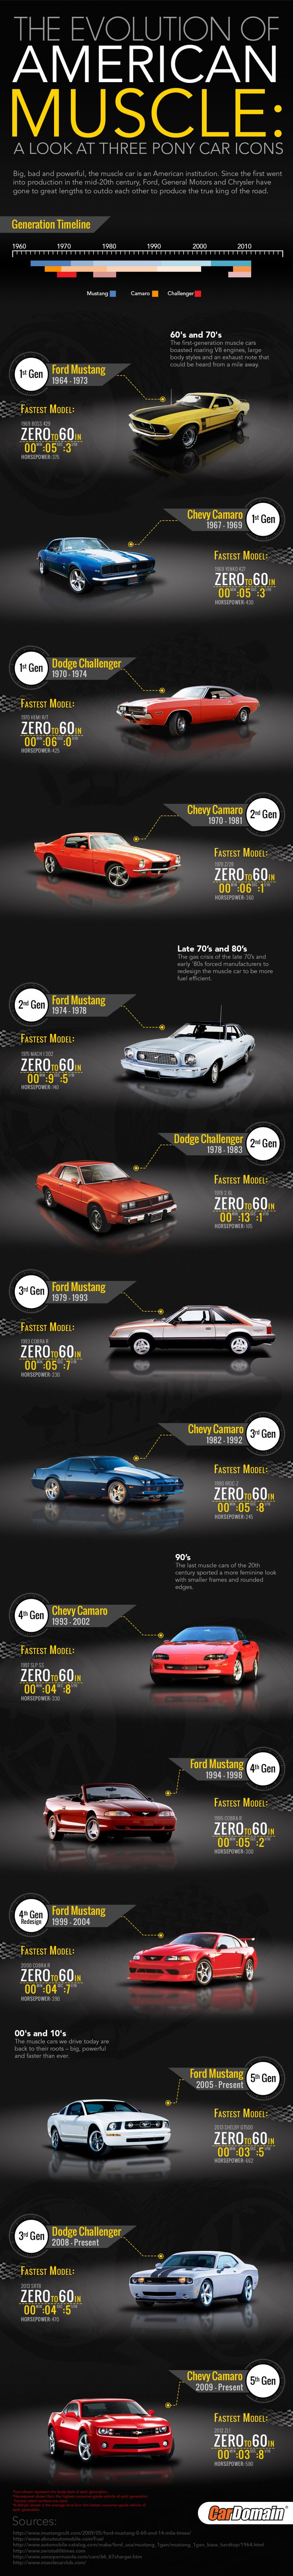 The Evolution of American Muscle: A Look at Three Pony Car Icons #infographic